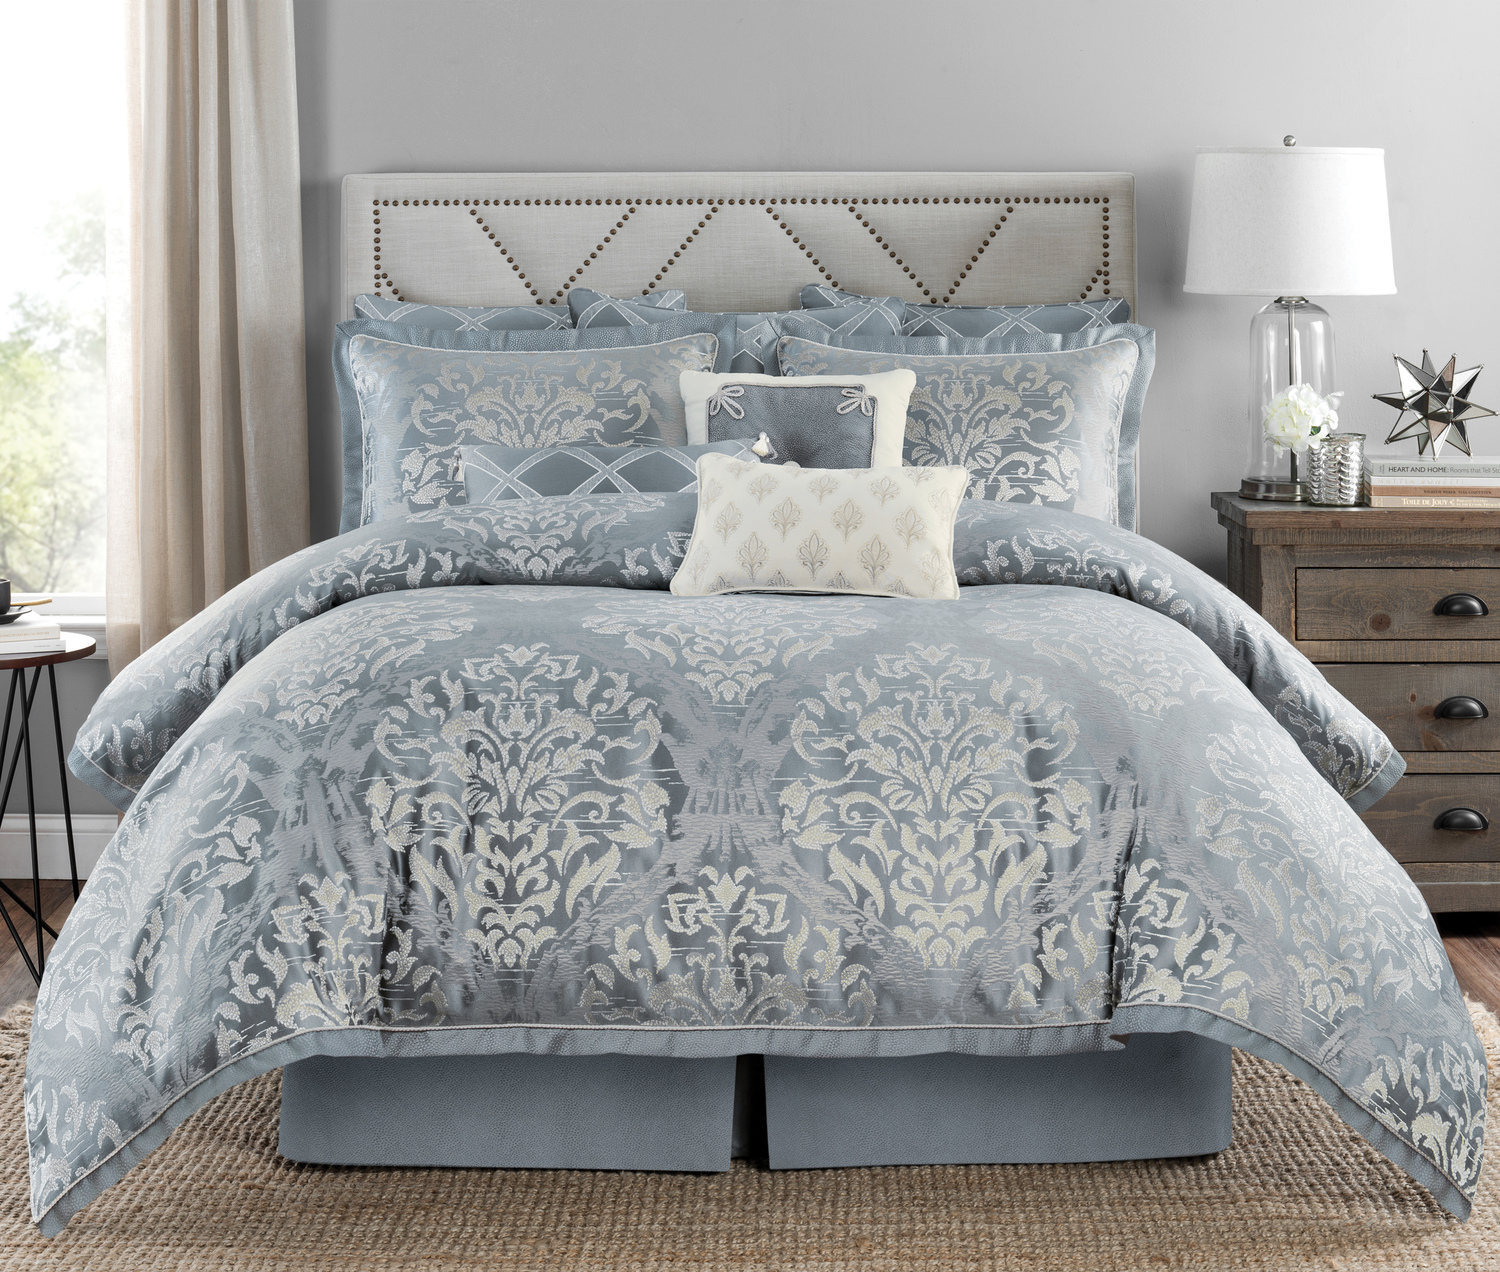 Marianna by Rose Tree Bedding